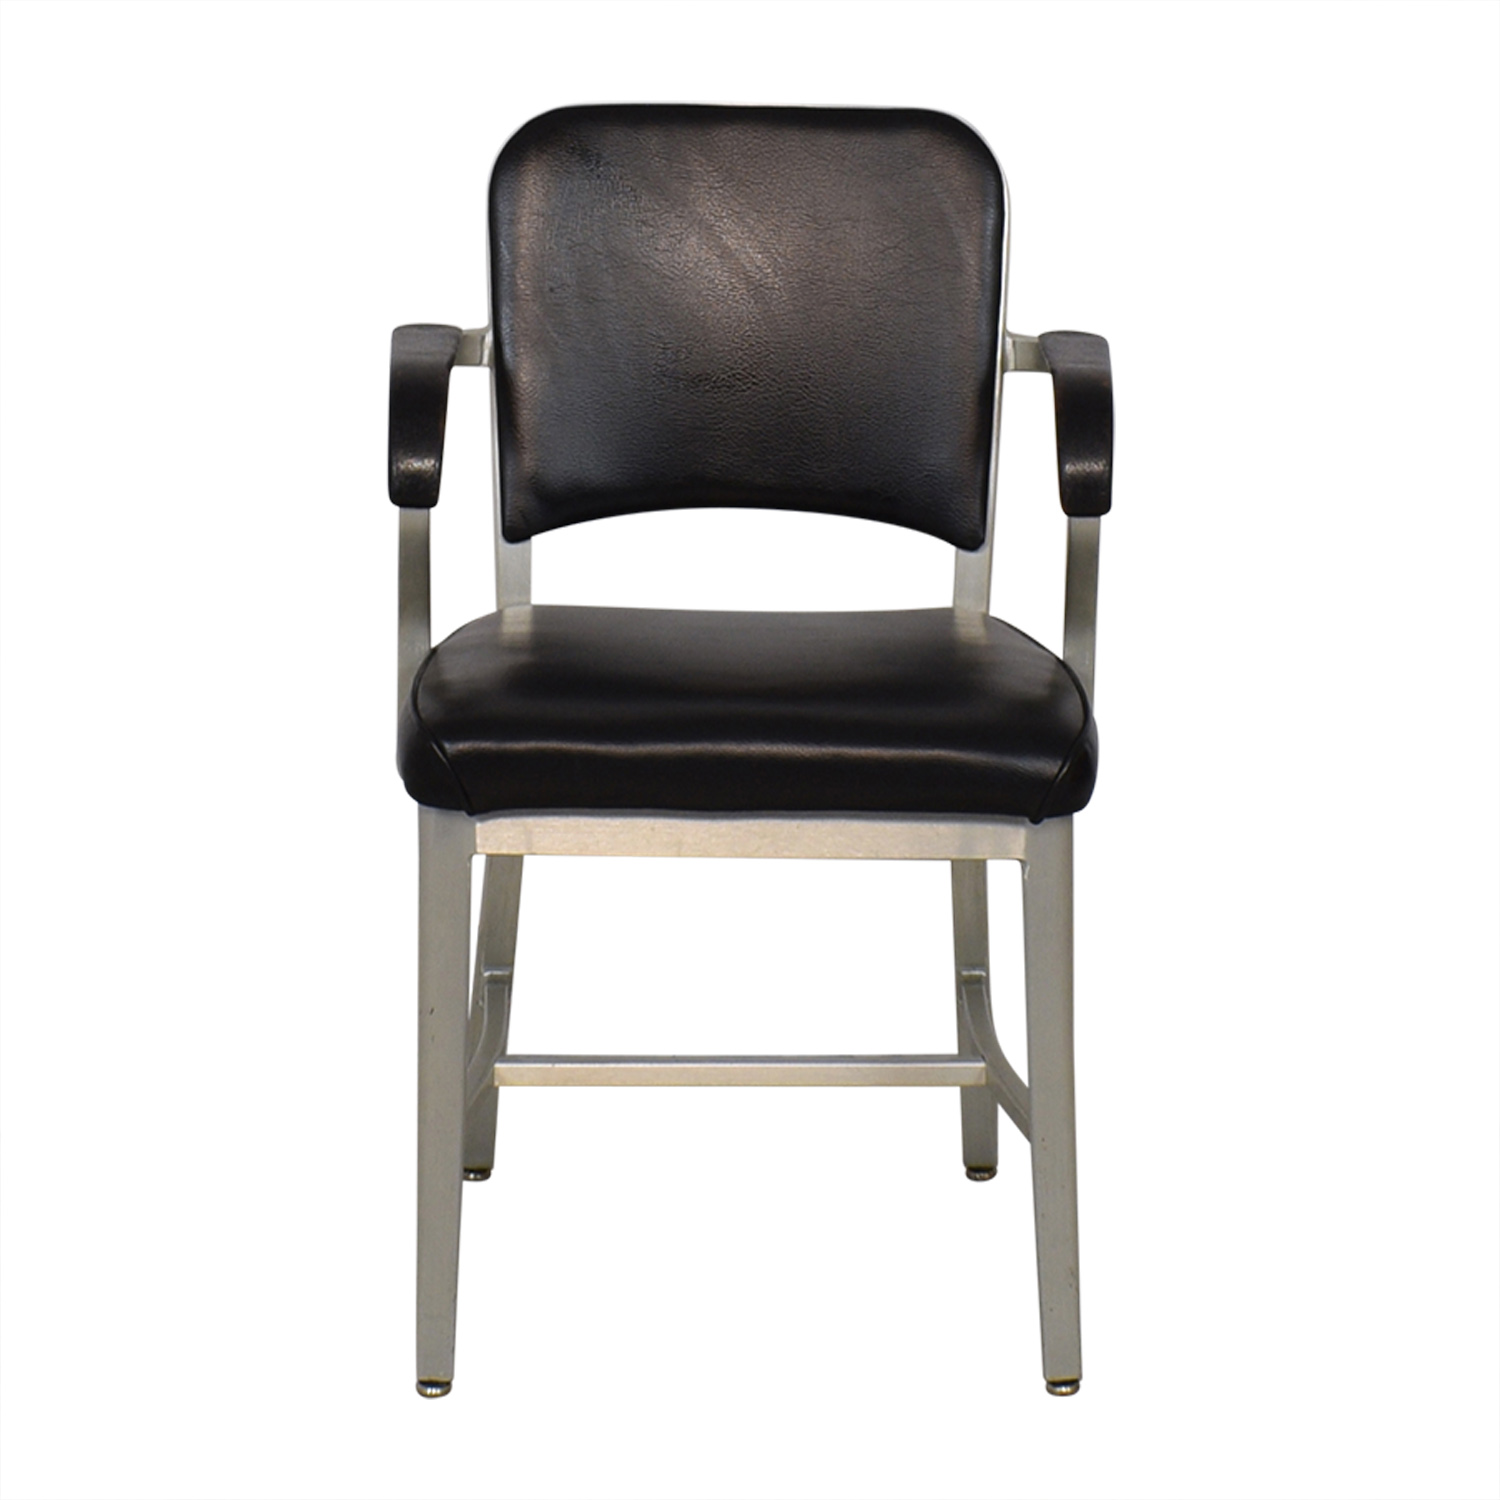 Emeco Upholstered Armchair / Dining Chairs